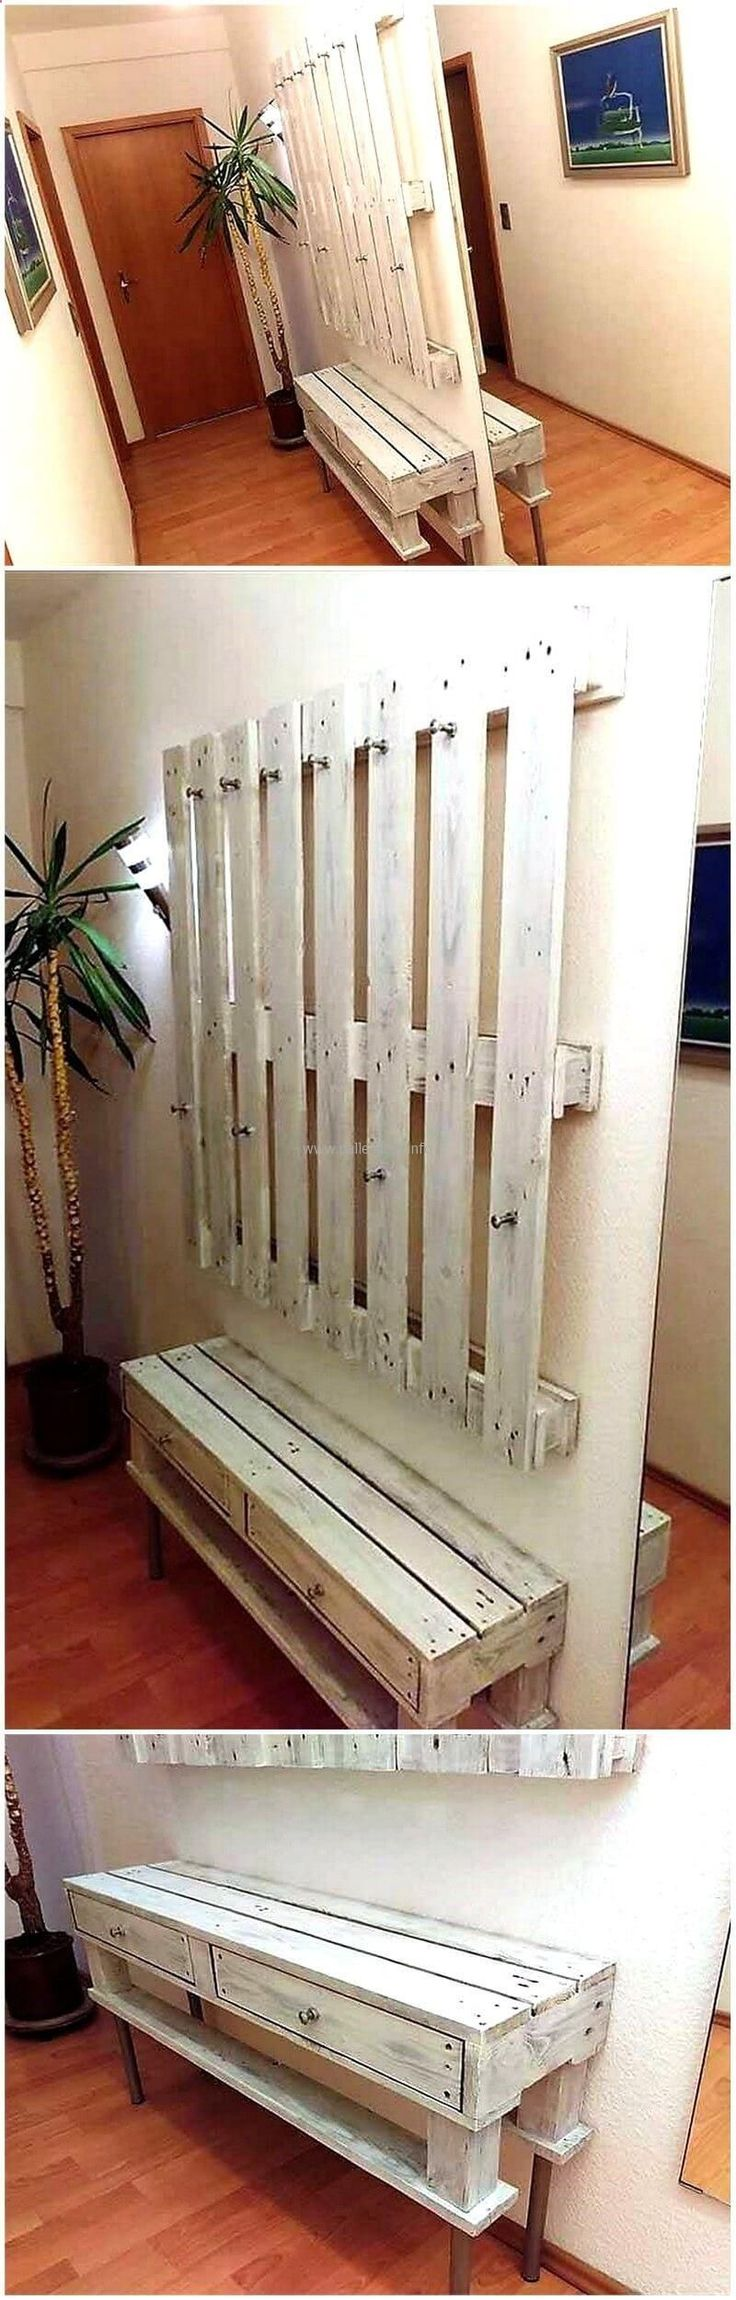 20 best diy entryway ideas images on pinterest creative ideas entryway storage and bricolage. Black Bedroom Furniture Sets. Home Design Ideas